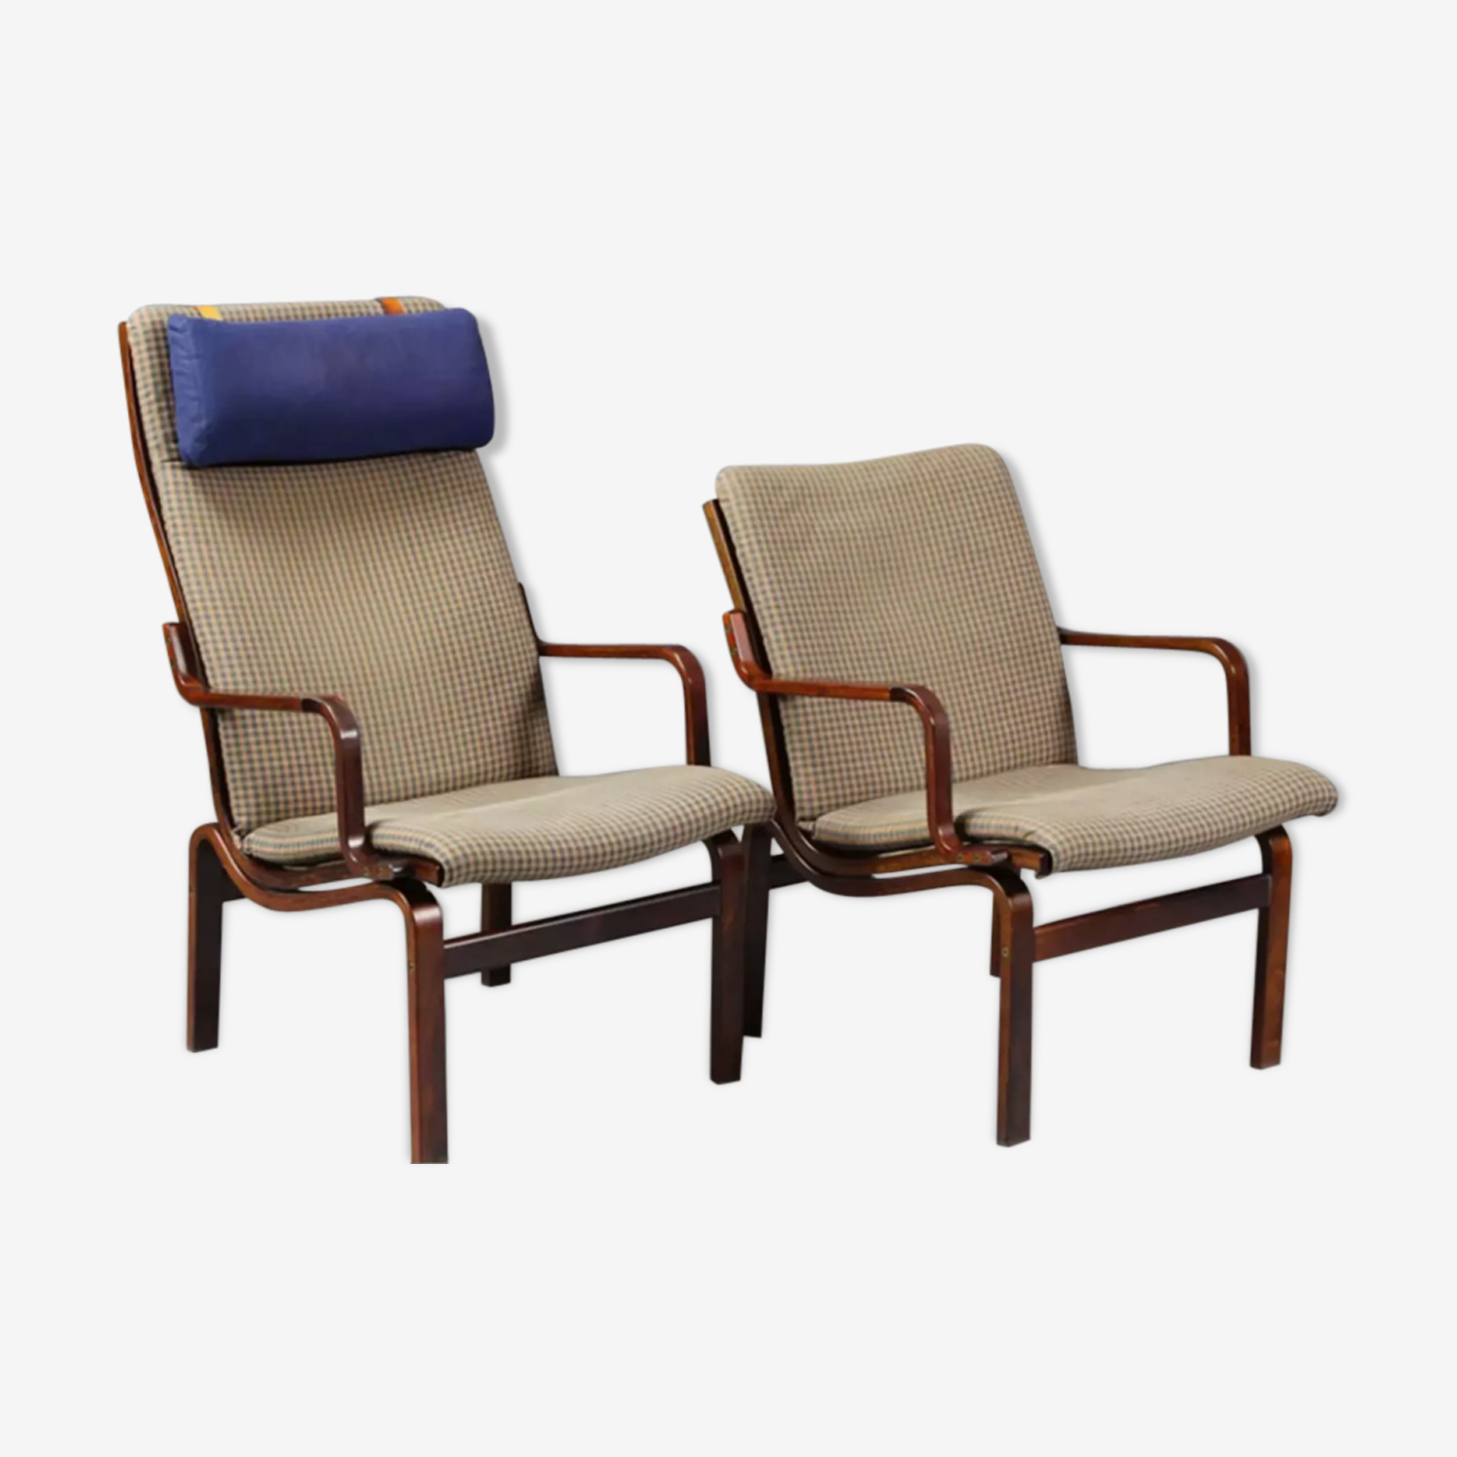 Pair of armchairs 1970